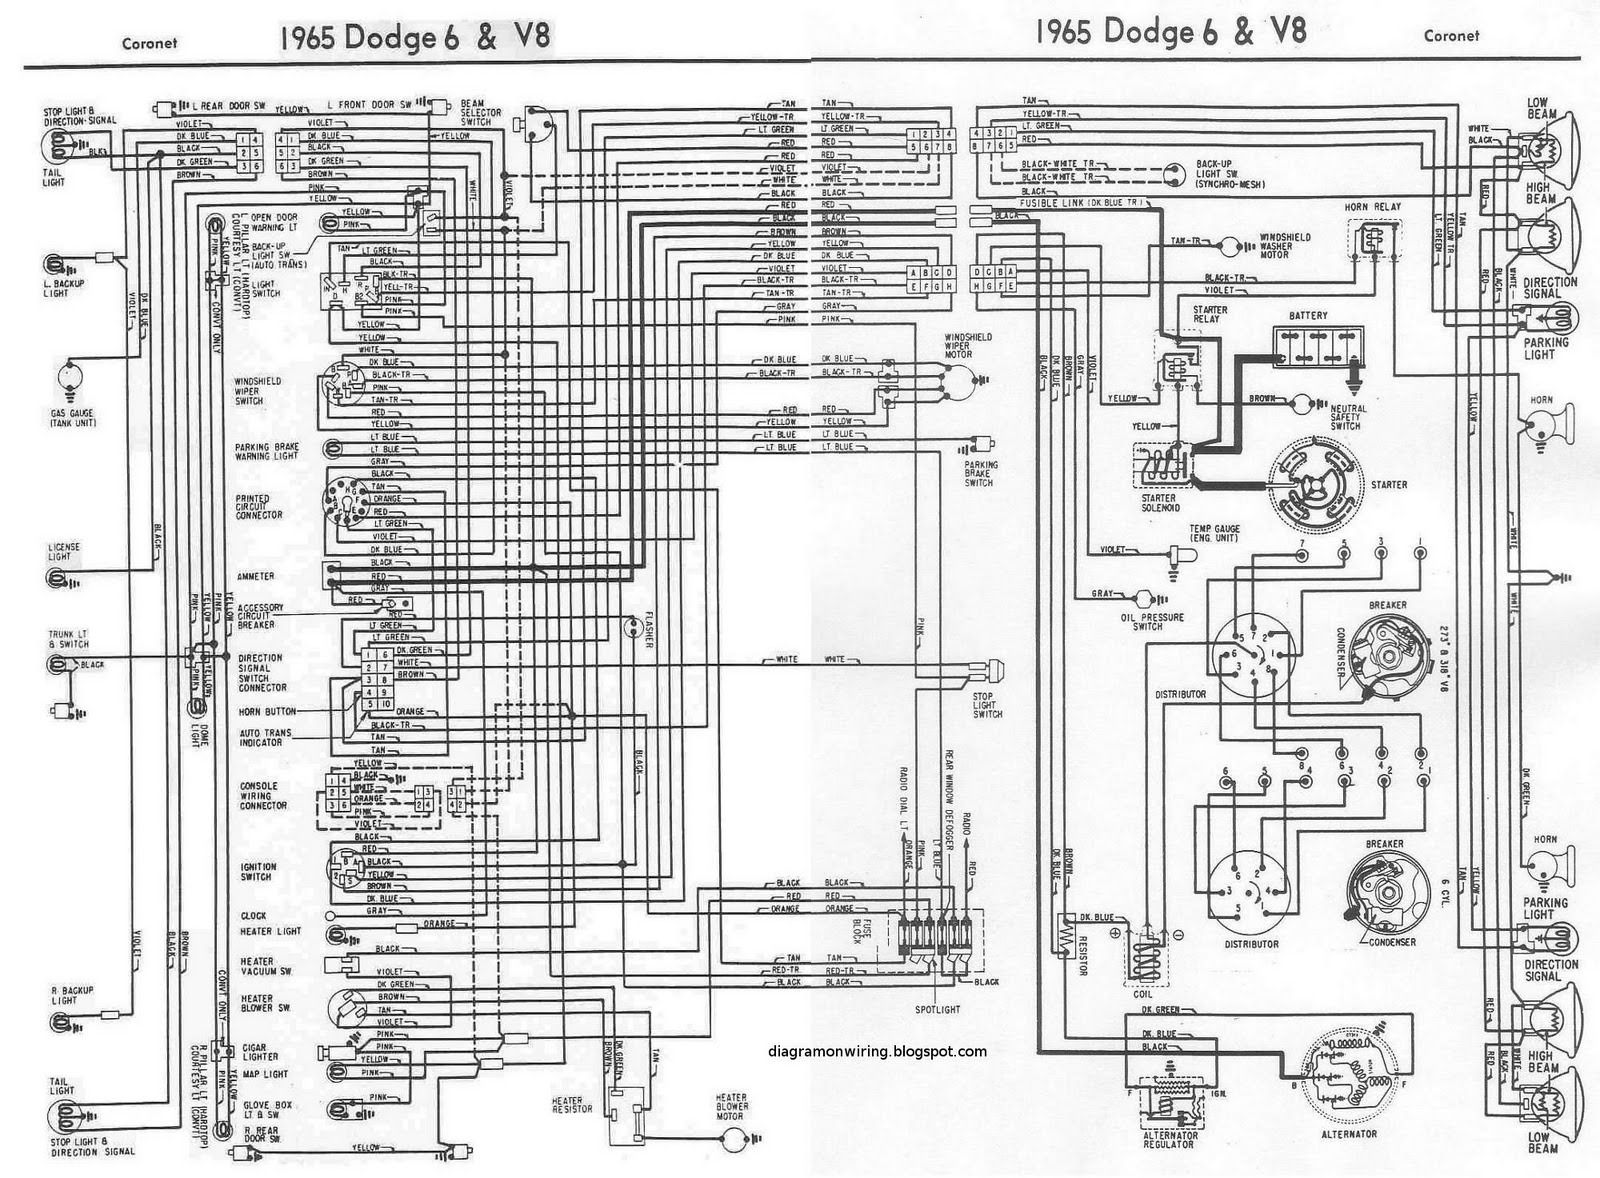 1967 dodge dart gt wiring diagram product wiring diagrams u2022 rh genesisventures us 1965 dodge dart wiring harness 1965 dodge dart wiring harness